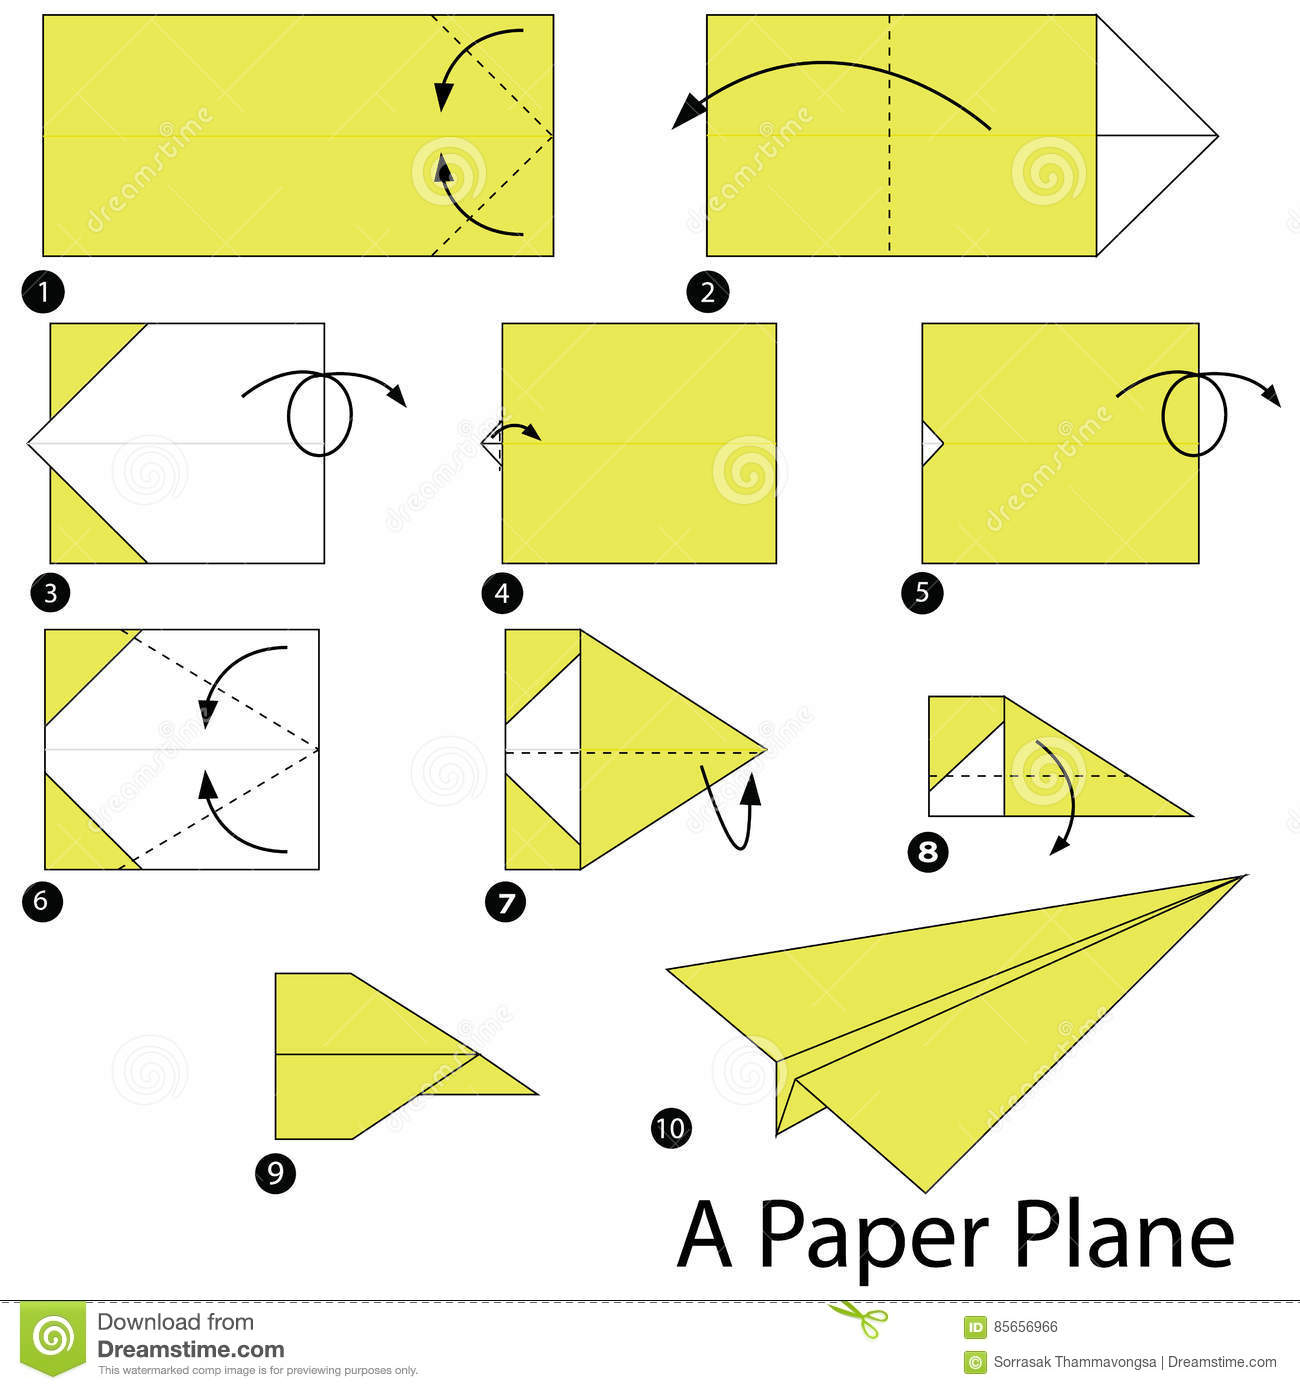 instructions tape par tape comment faire origami un avion de papier illustration de vecteur. Black Bedroom Furniture Sets. Home Design Ideas